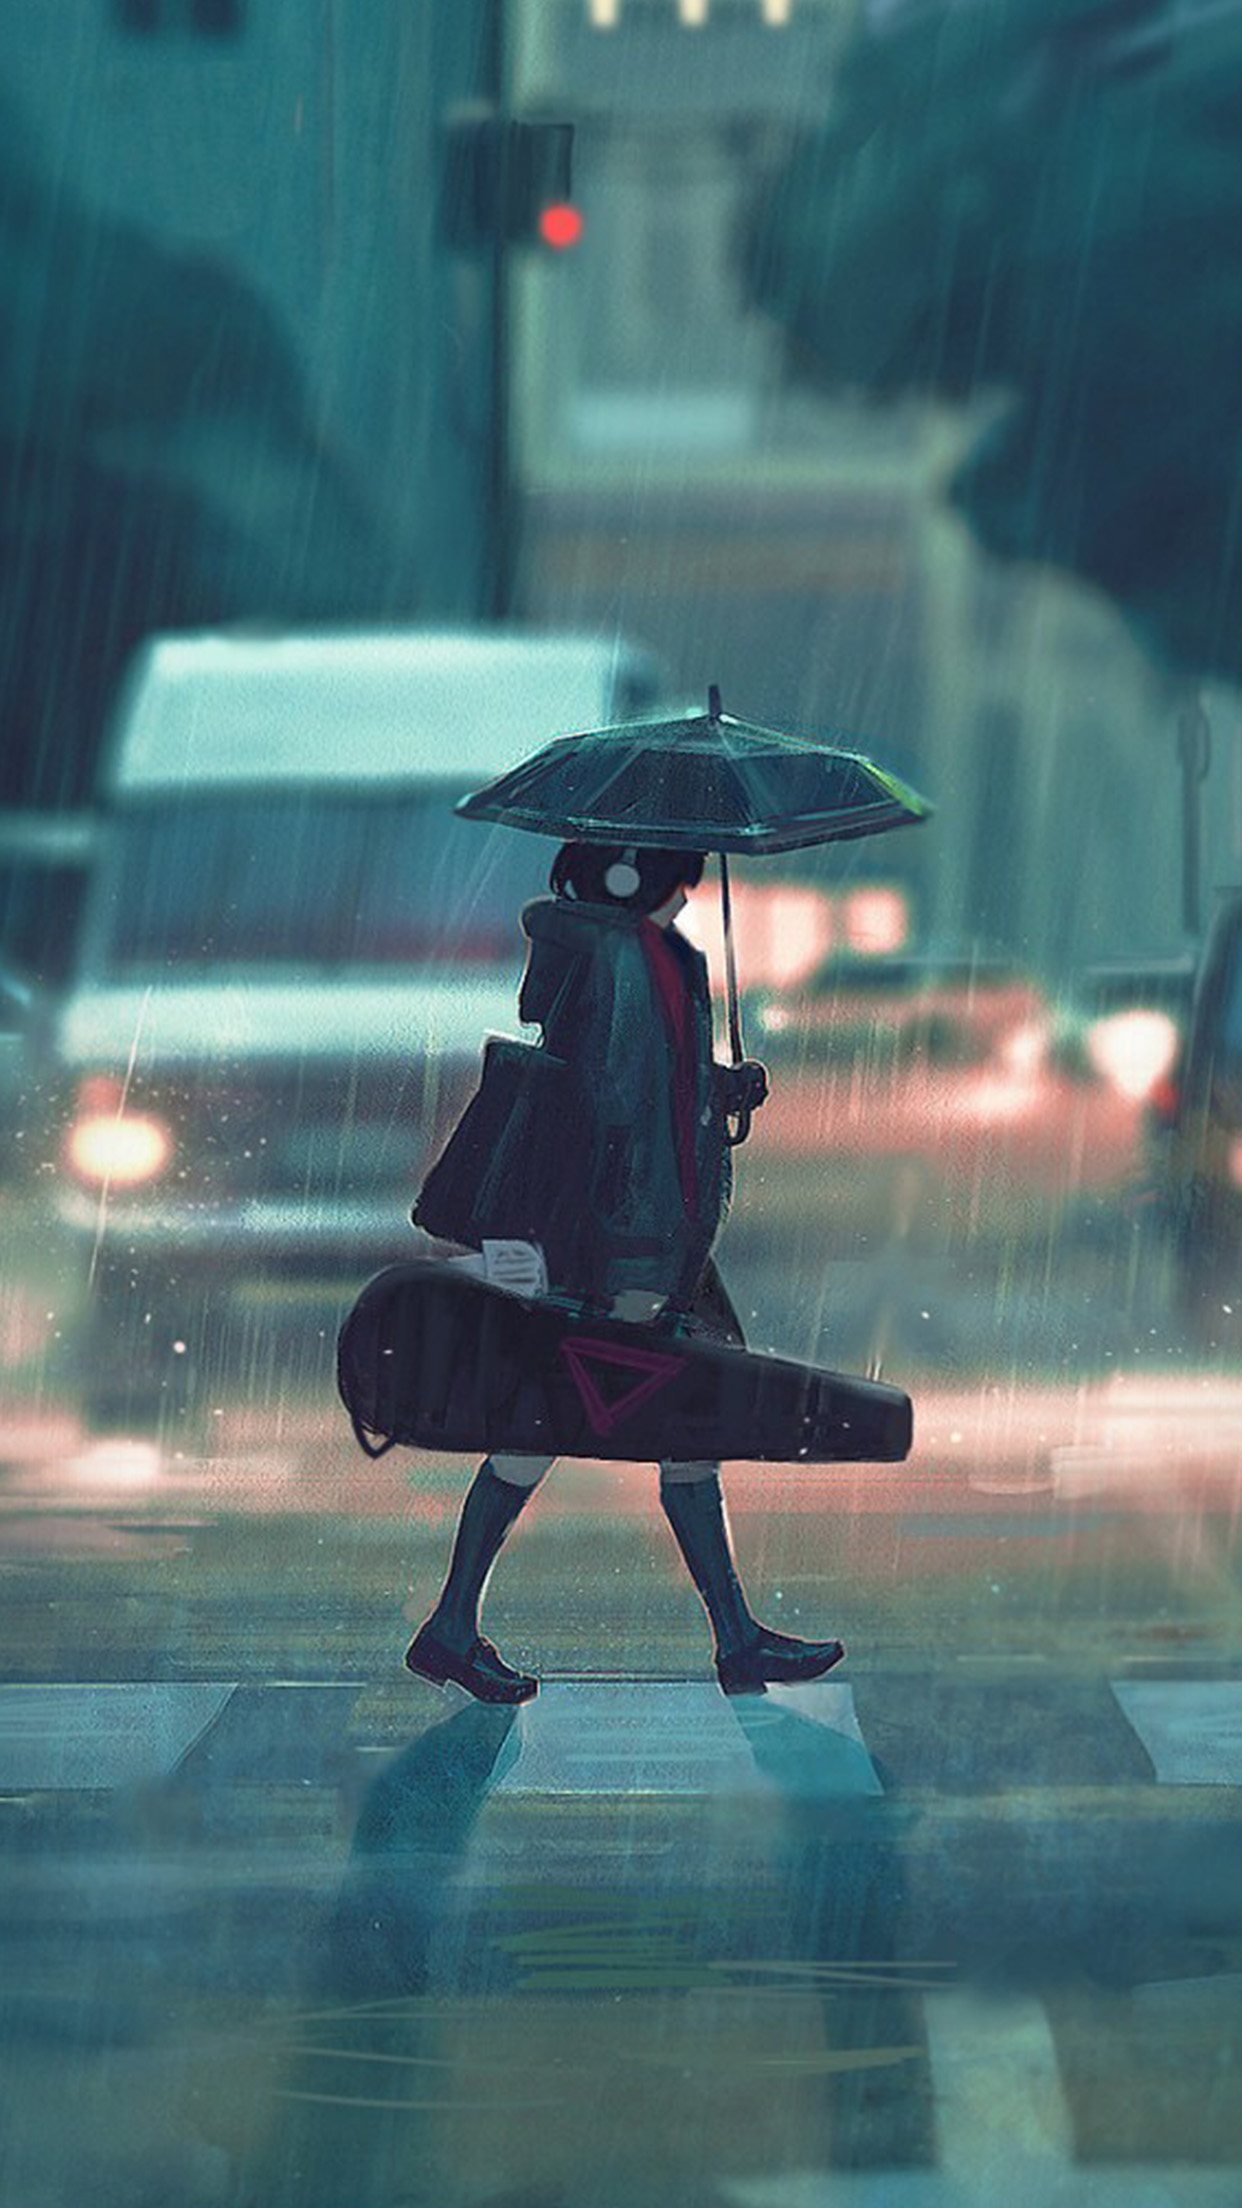 4k Fall Wallpaper For Phone Papers Co Iphone Wallpaper Bc89 Rainy Day Anime Paint